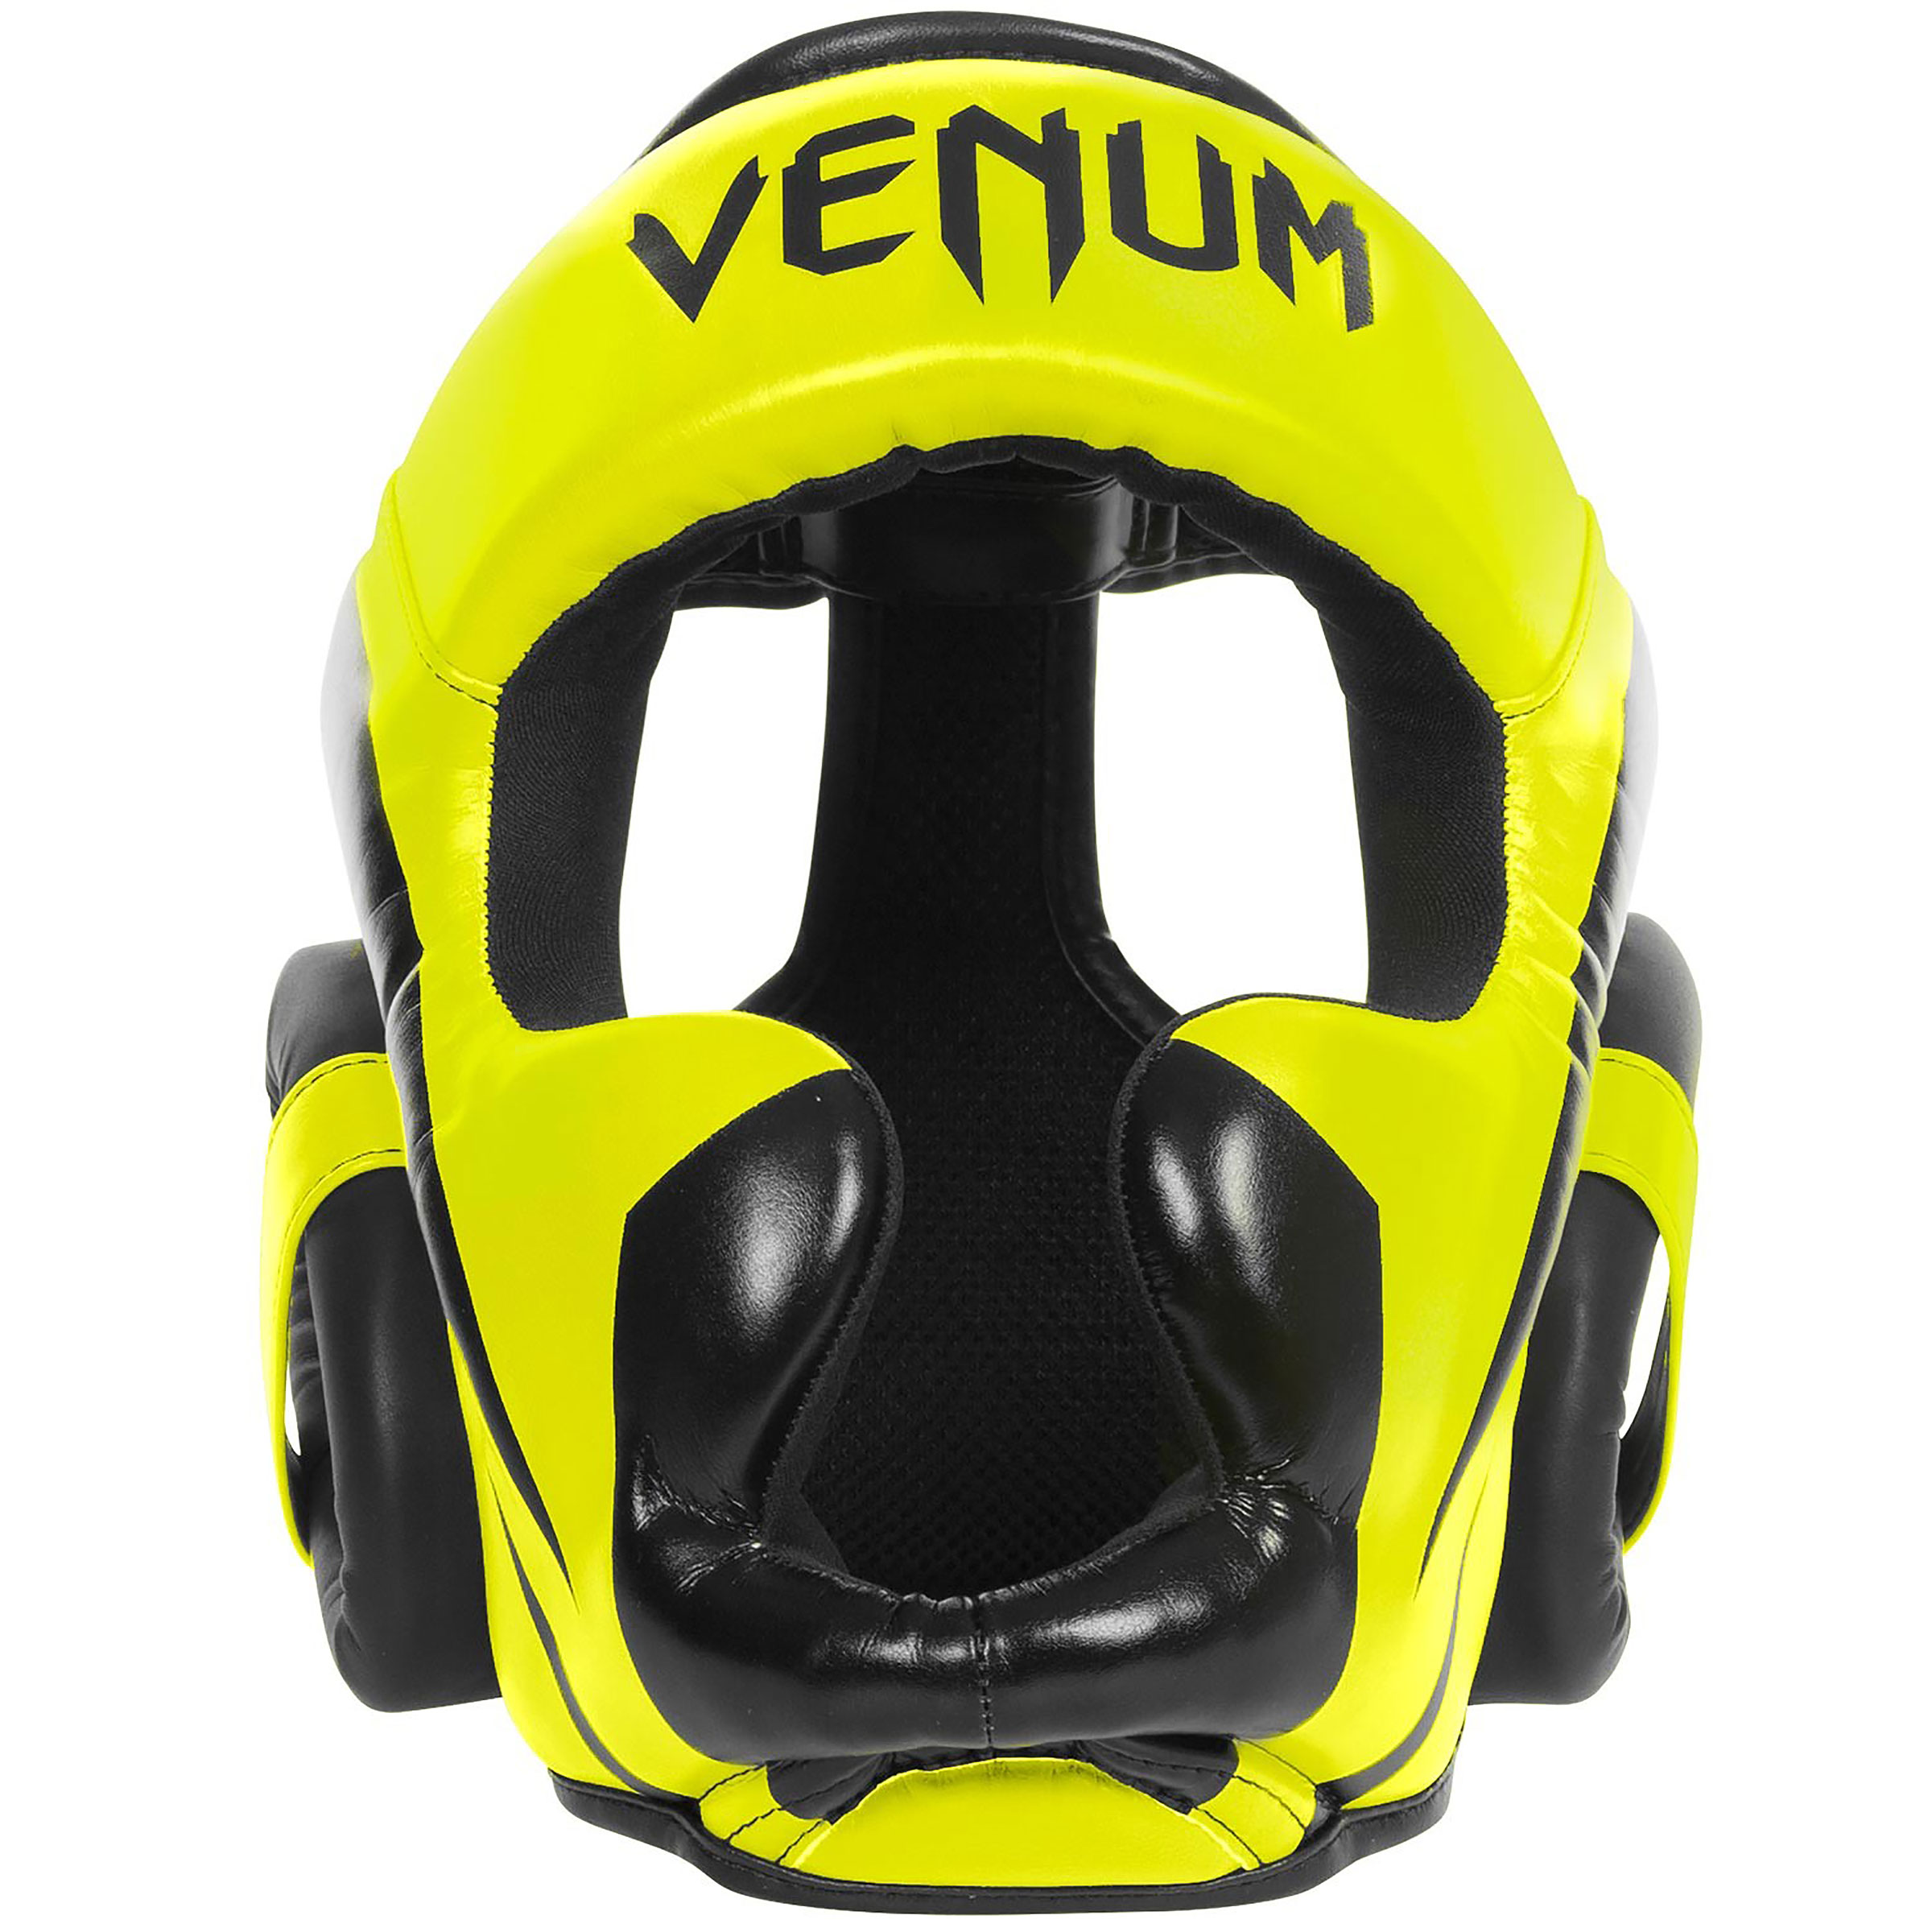 Venum Elite Neo Headgear